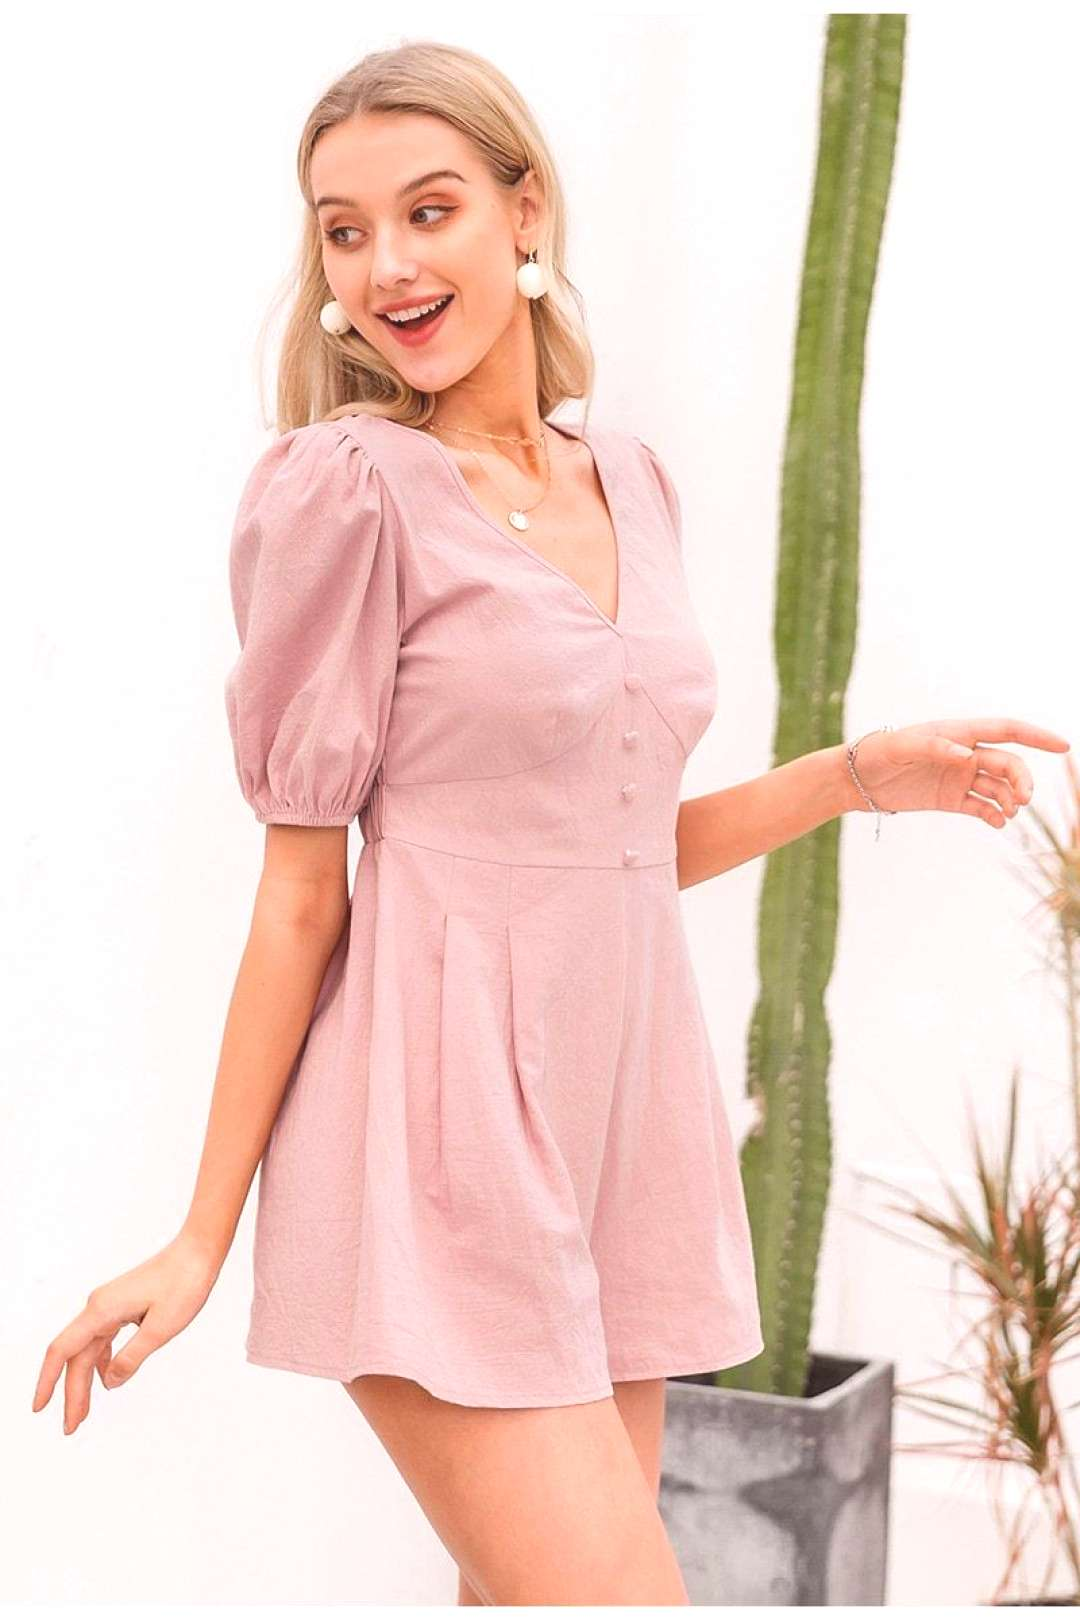 SOLID PINK RETRO BUTTON ROMPERS We are offering the most comfortable chic boho clothes amp accessorie